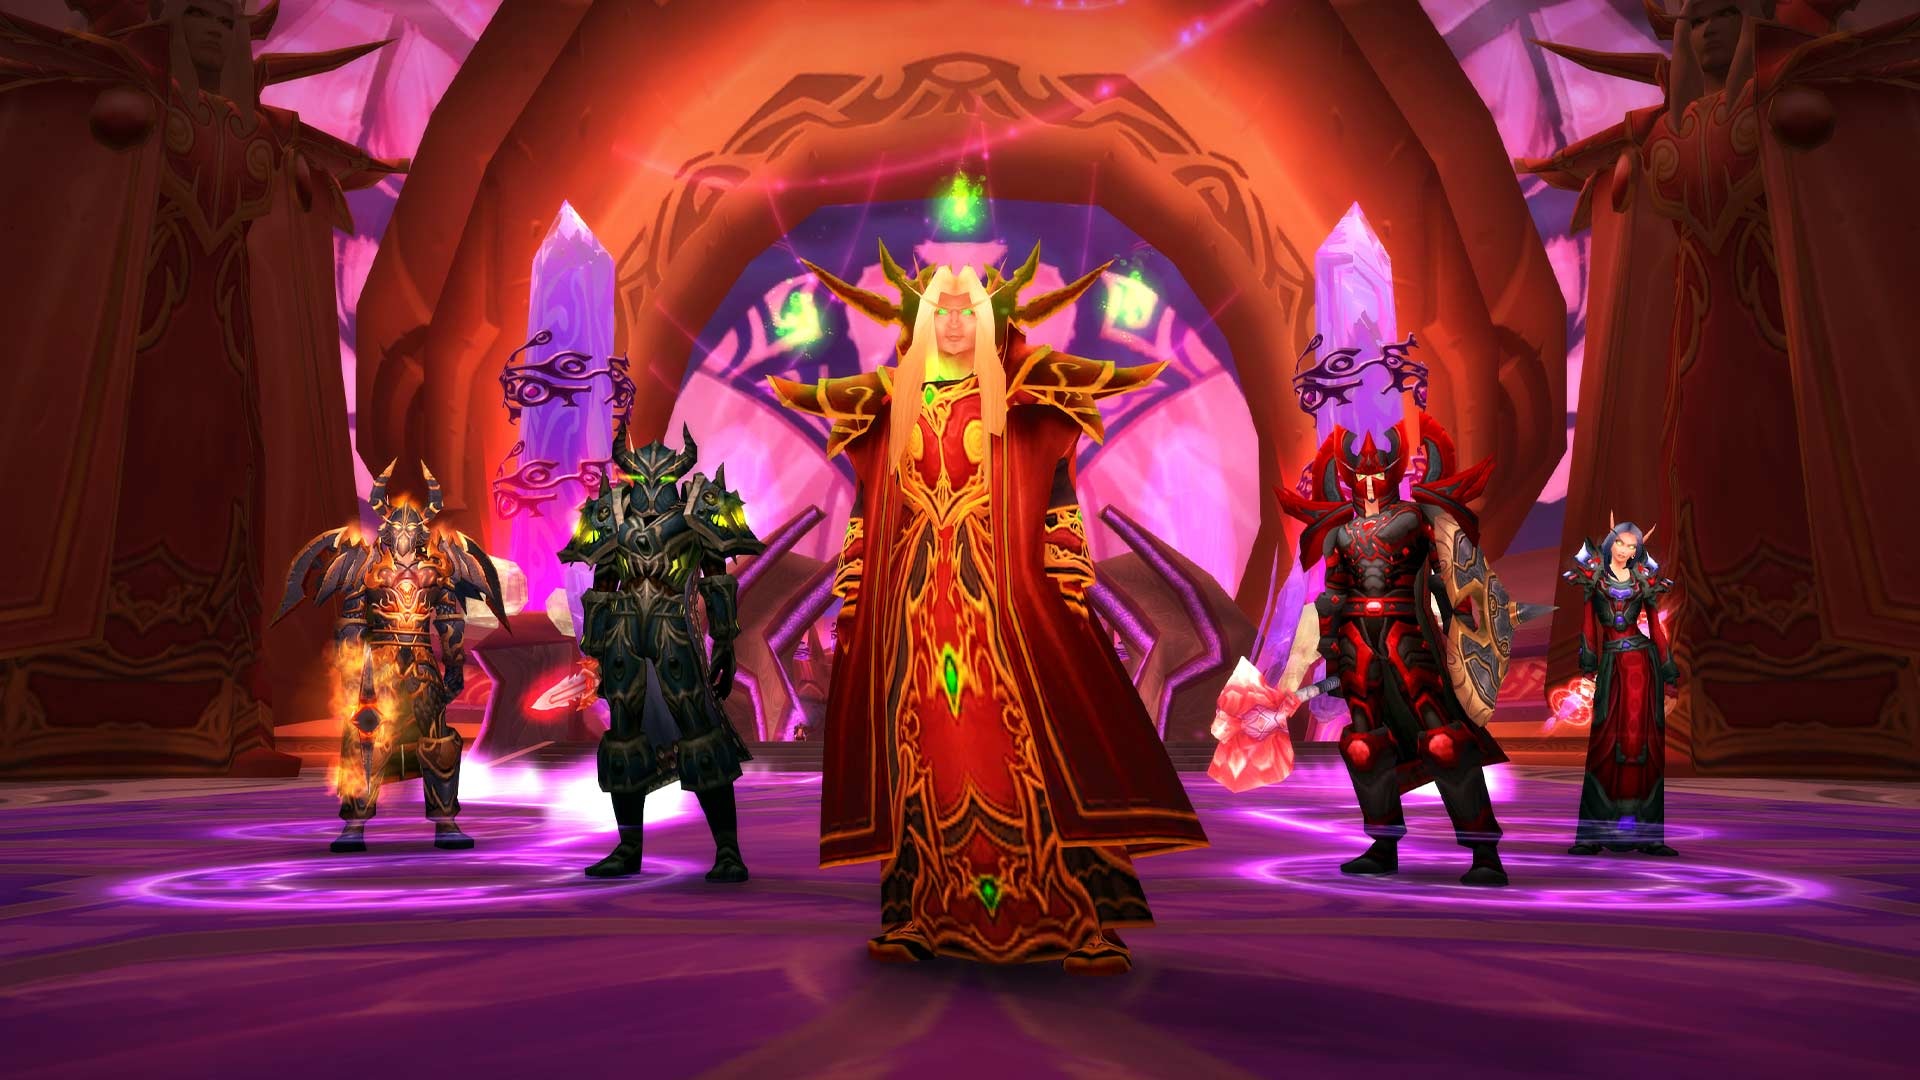 WoW TBC Classic Phase 2: Alles zu Release, Raids, PvP & Dungeonbrowser